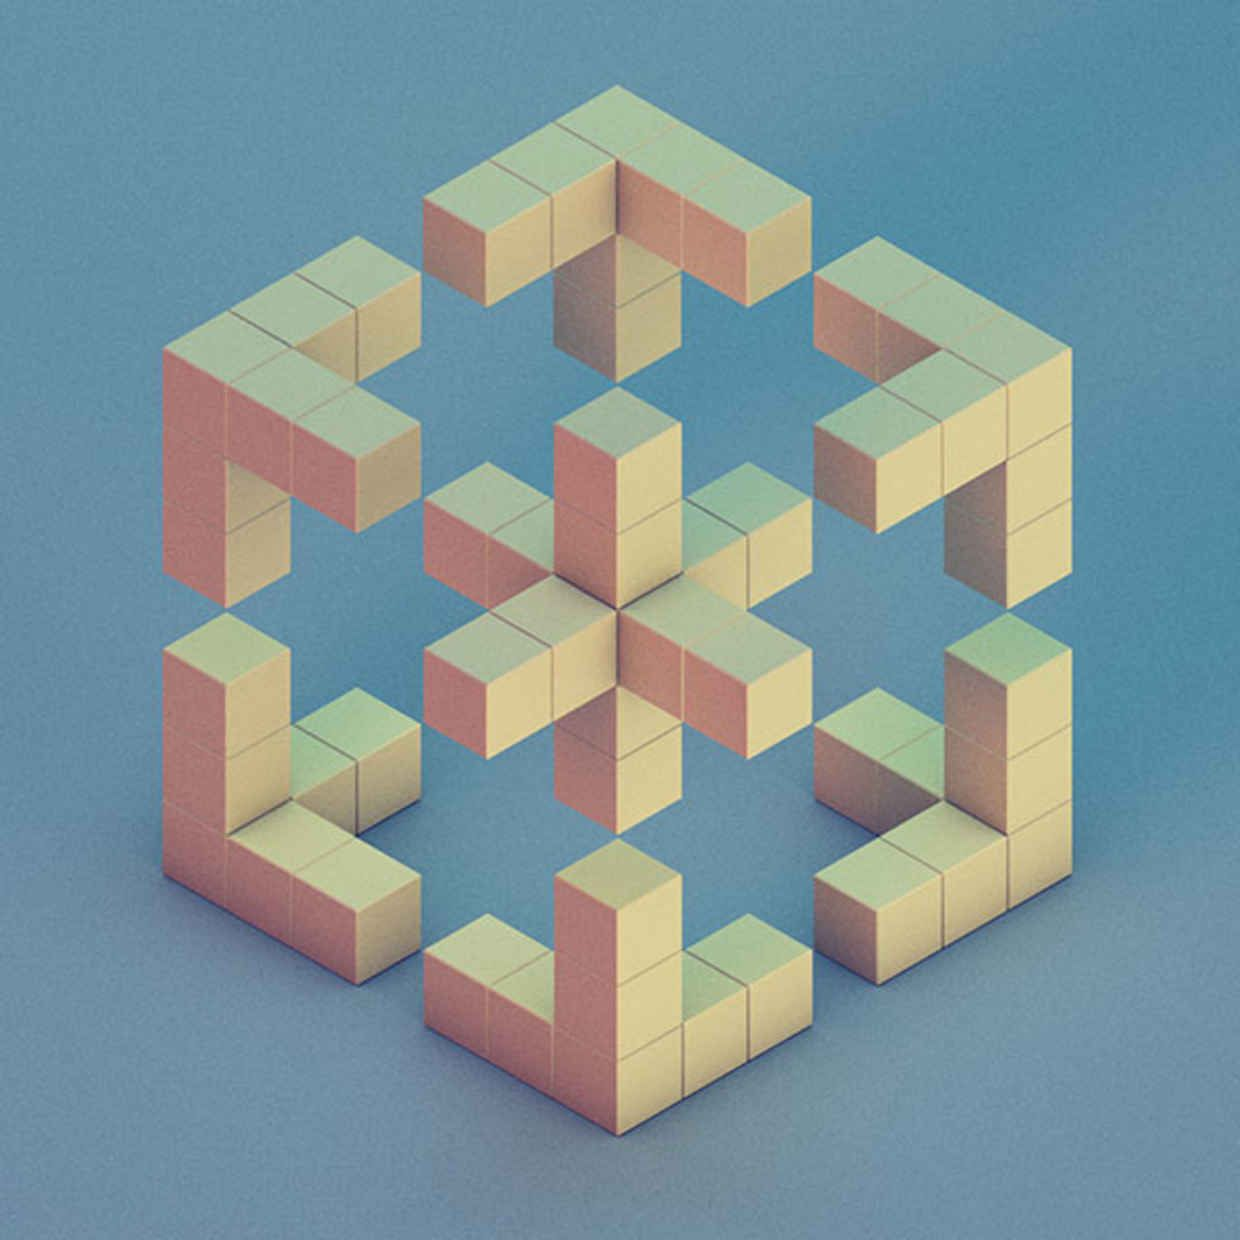 30 brilliant examples of geometric designs cube 3d and face Geometric patterns